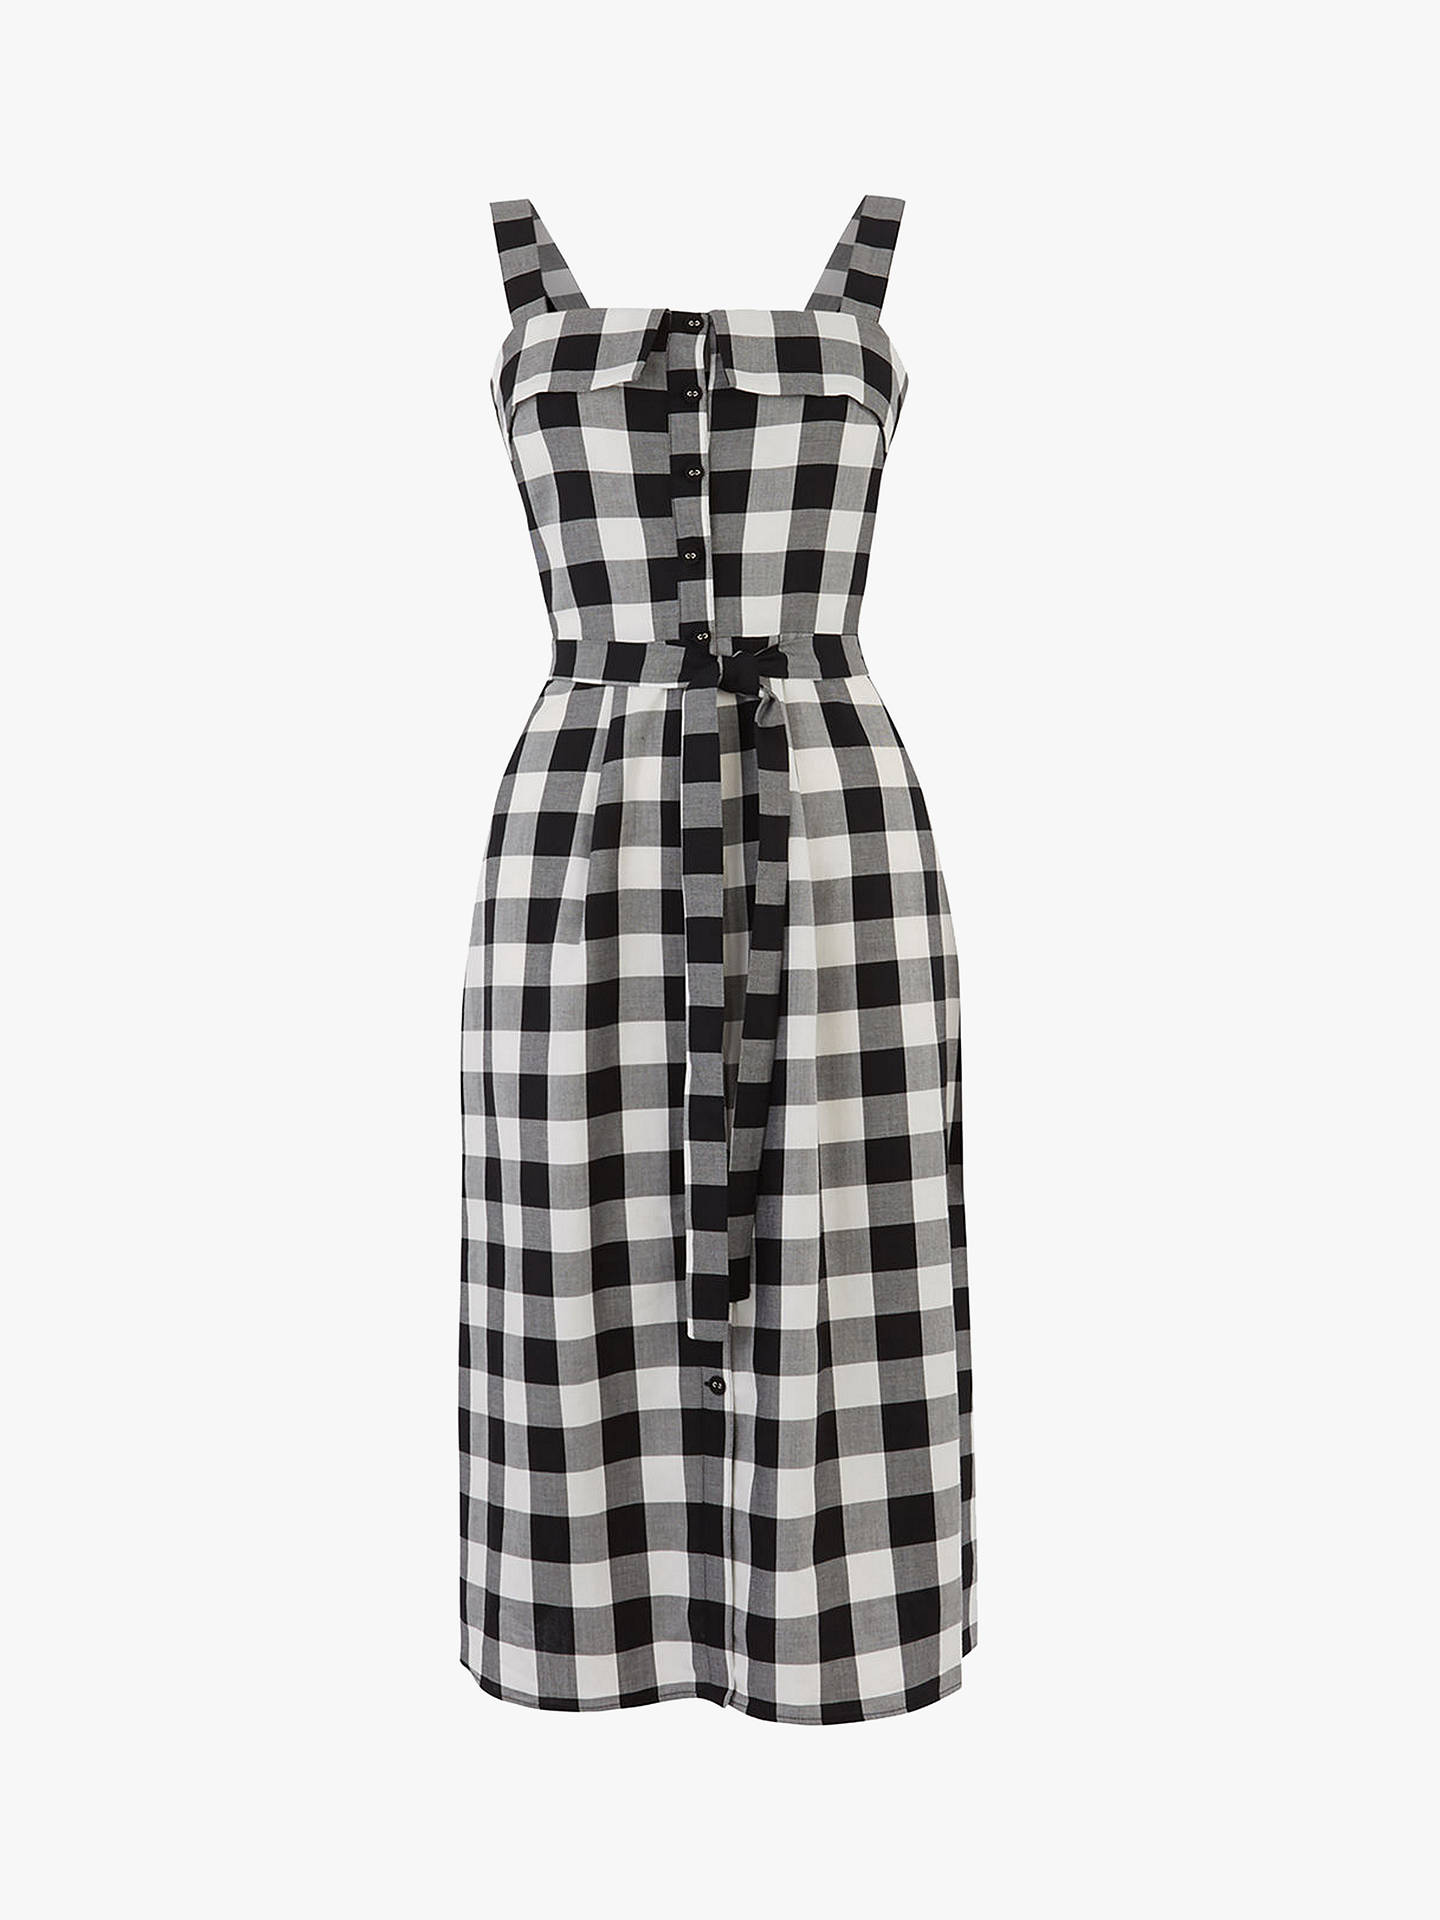 30e564a7cdc9 ... Buy Oasis Gingham Midi Dress, Black/White, 10R Online at johnlewis.com  ...